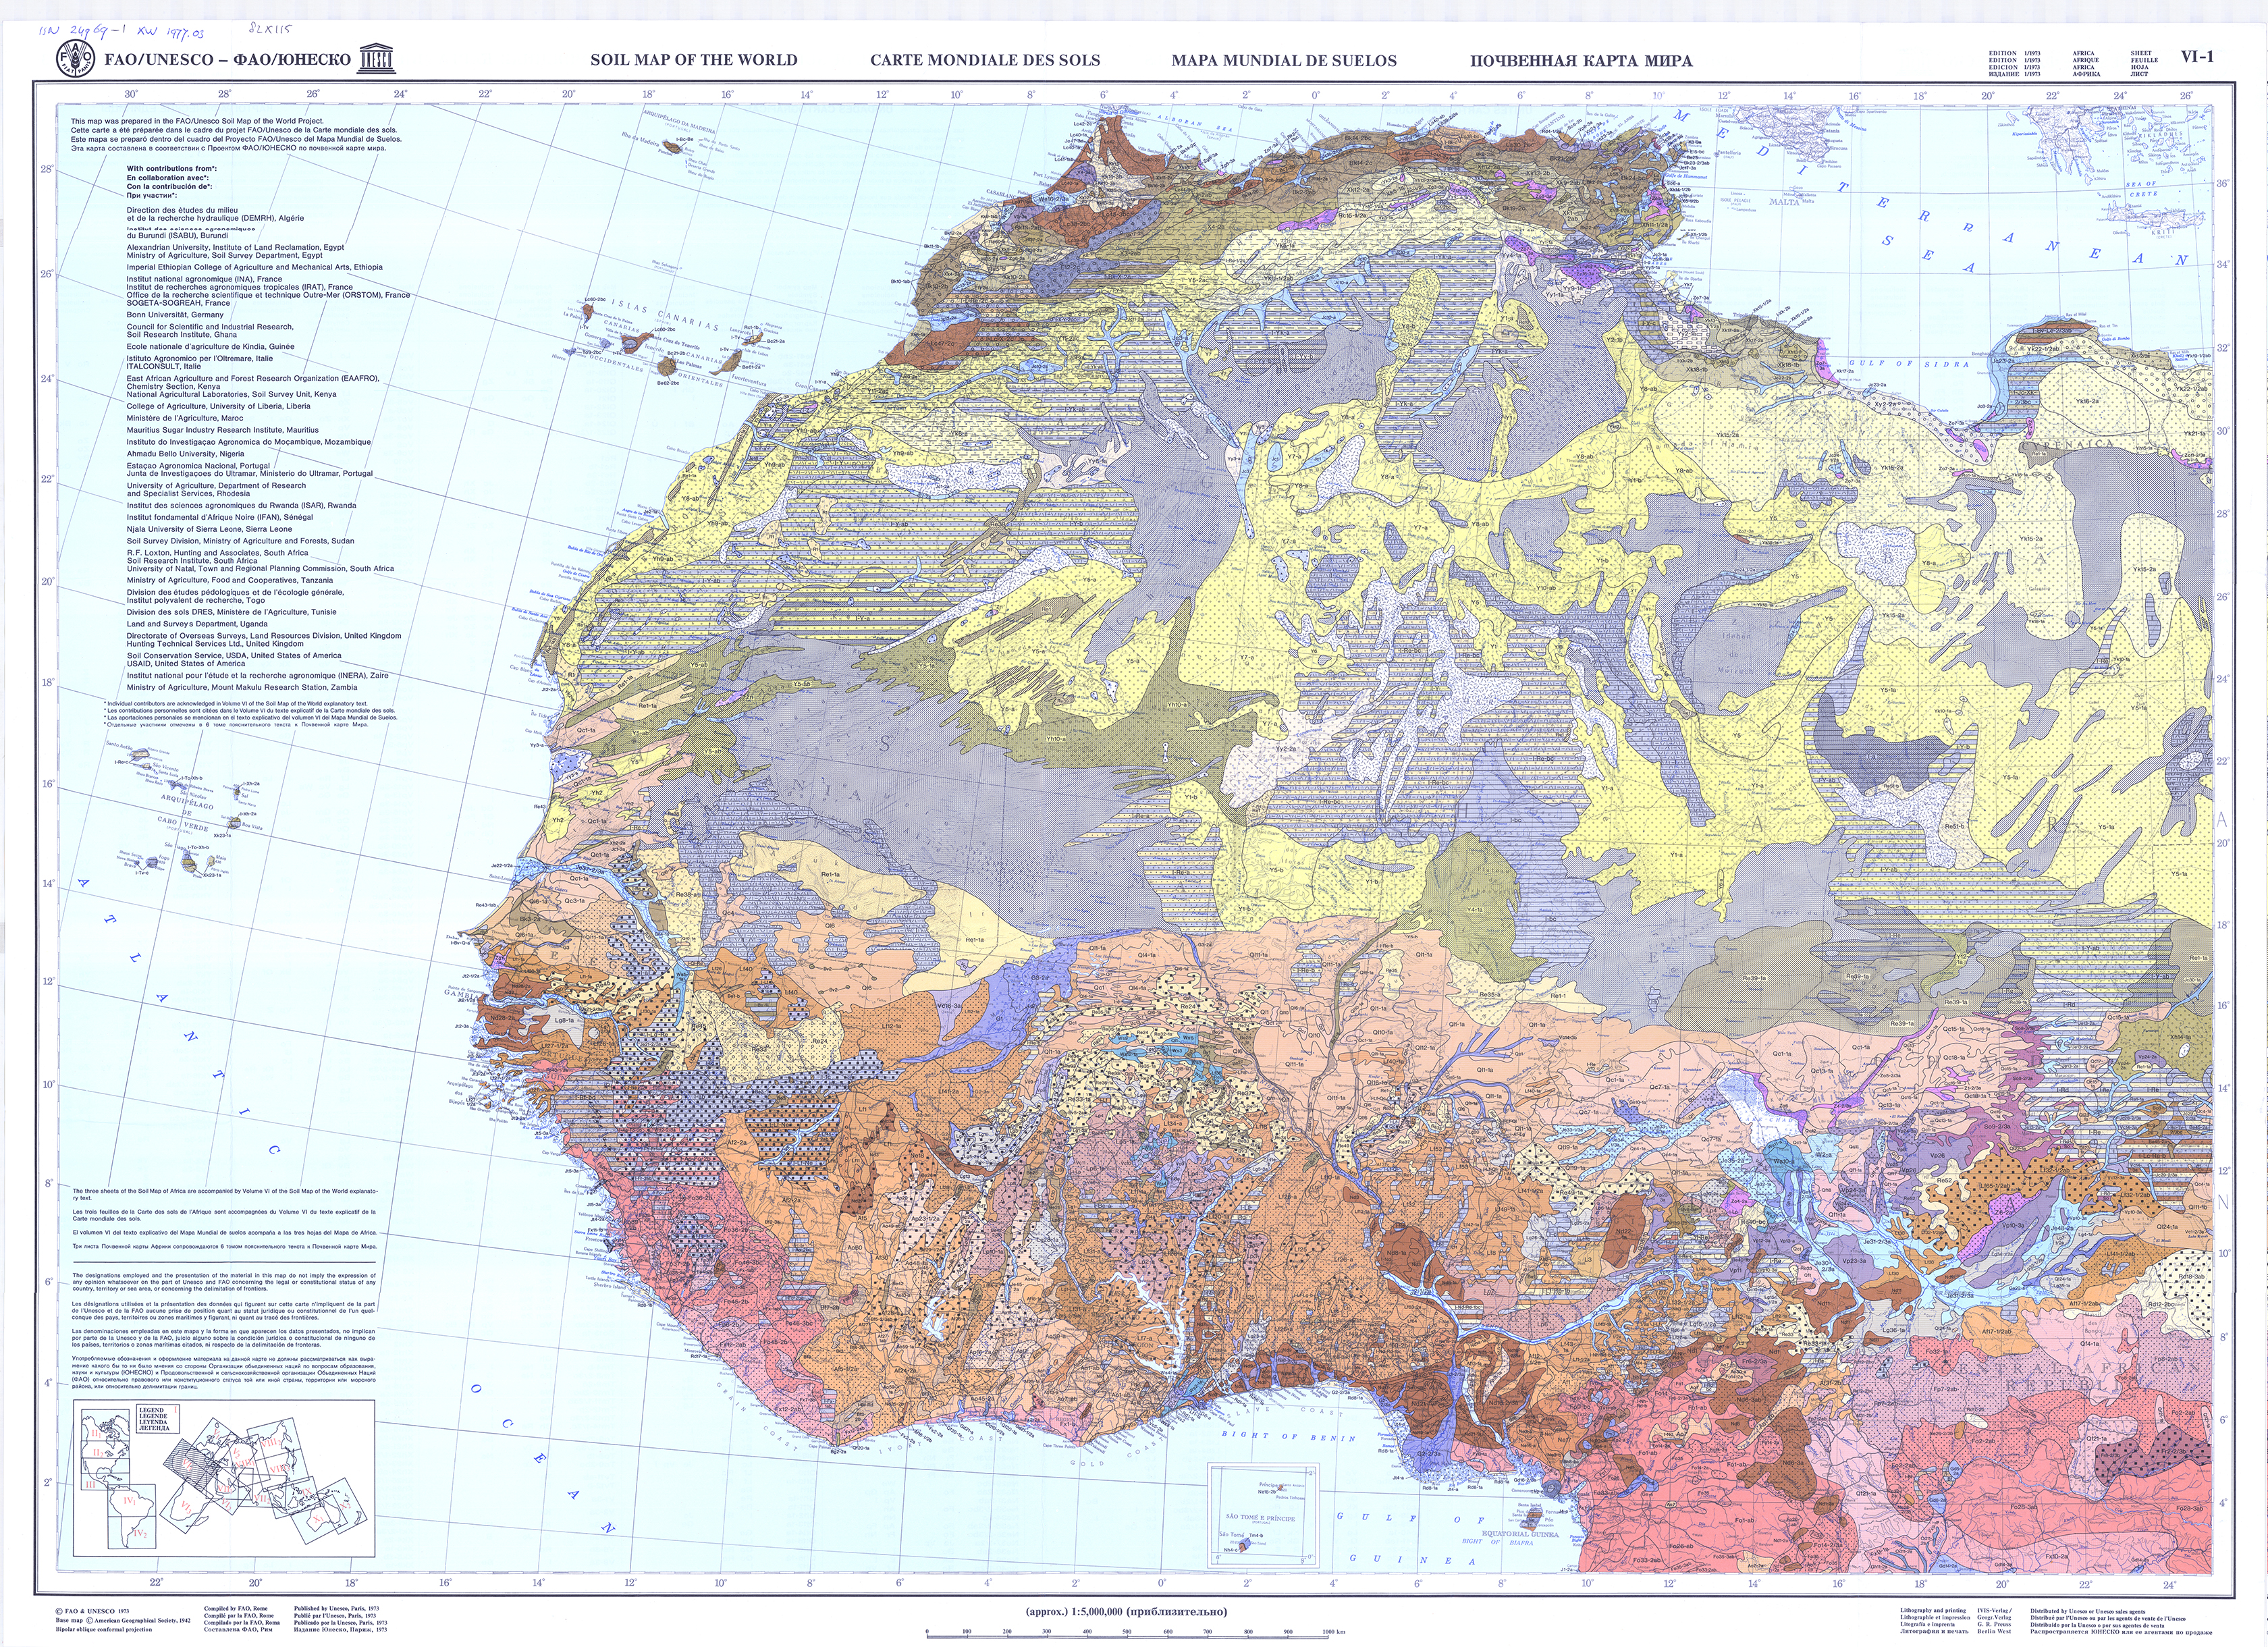 Faounesco soil map of the world fao soils portal food and map 1 gumiabroncs Images